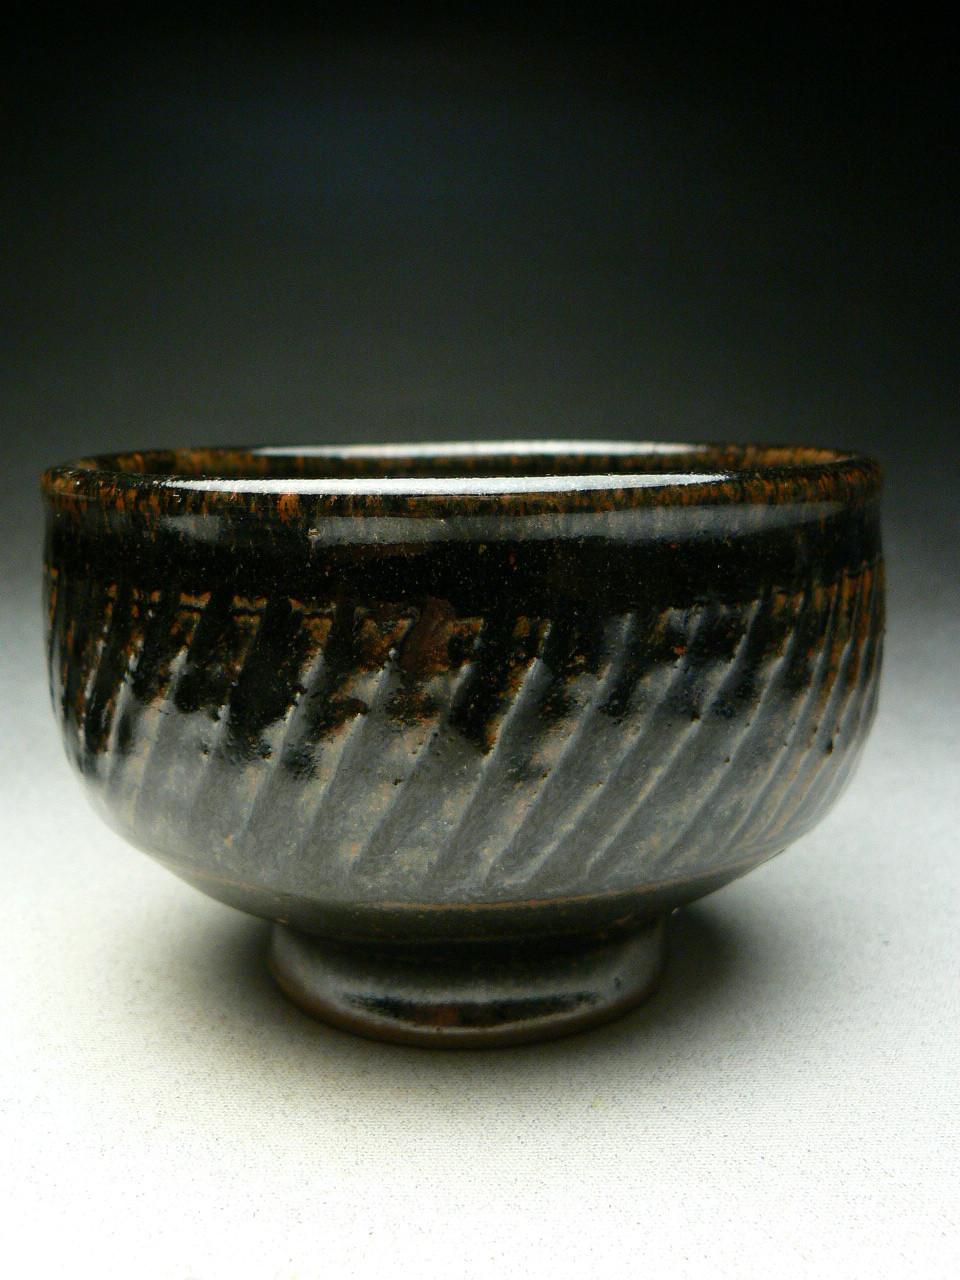 MIREK SMISEK - 10 TEA BOWLS - STONEWARE - CARVED FLUTING ON SIDES, TENMOKU GLAZE, ARTIST STAMP -  13cmD x 8.5 cmH - #SMR11 - $110NZD  EACH.